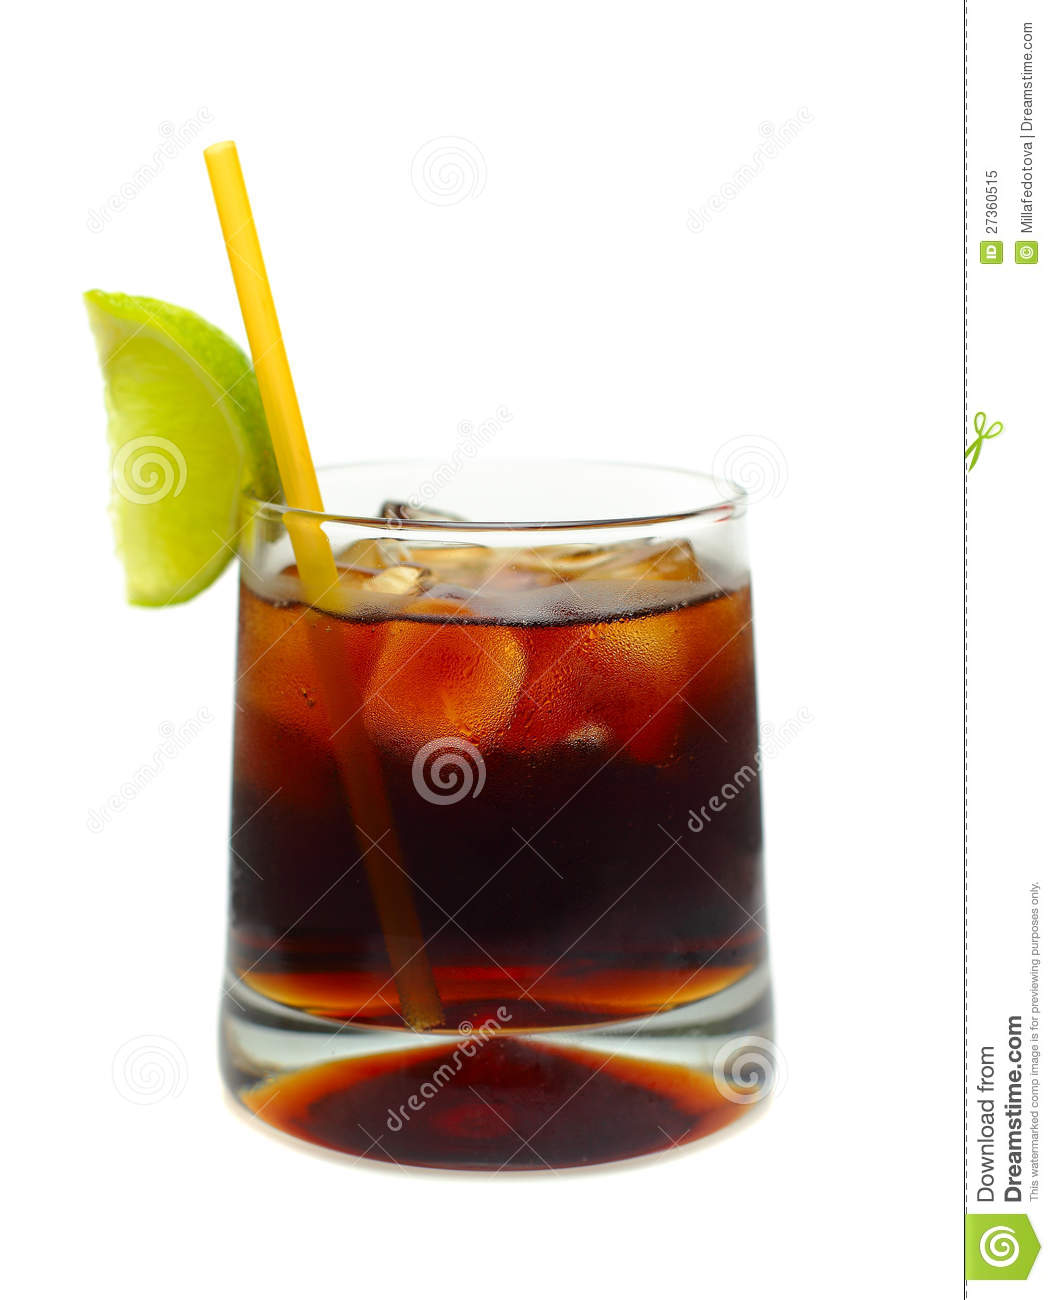 Cocktail - Rum, coke, ice and lime